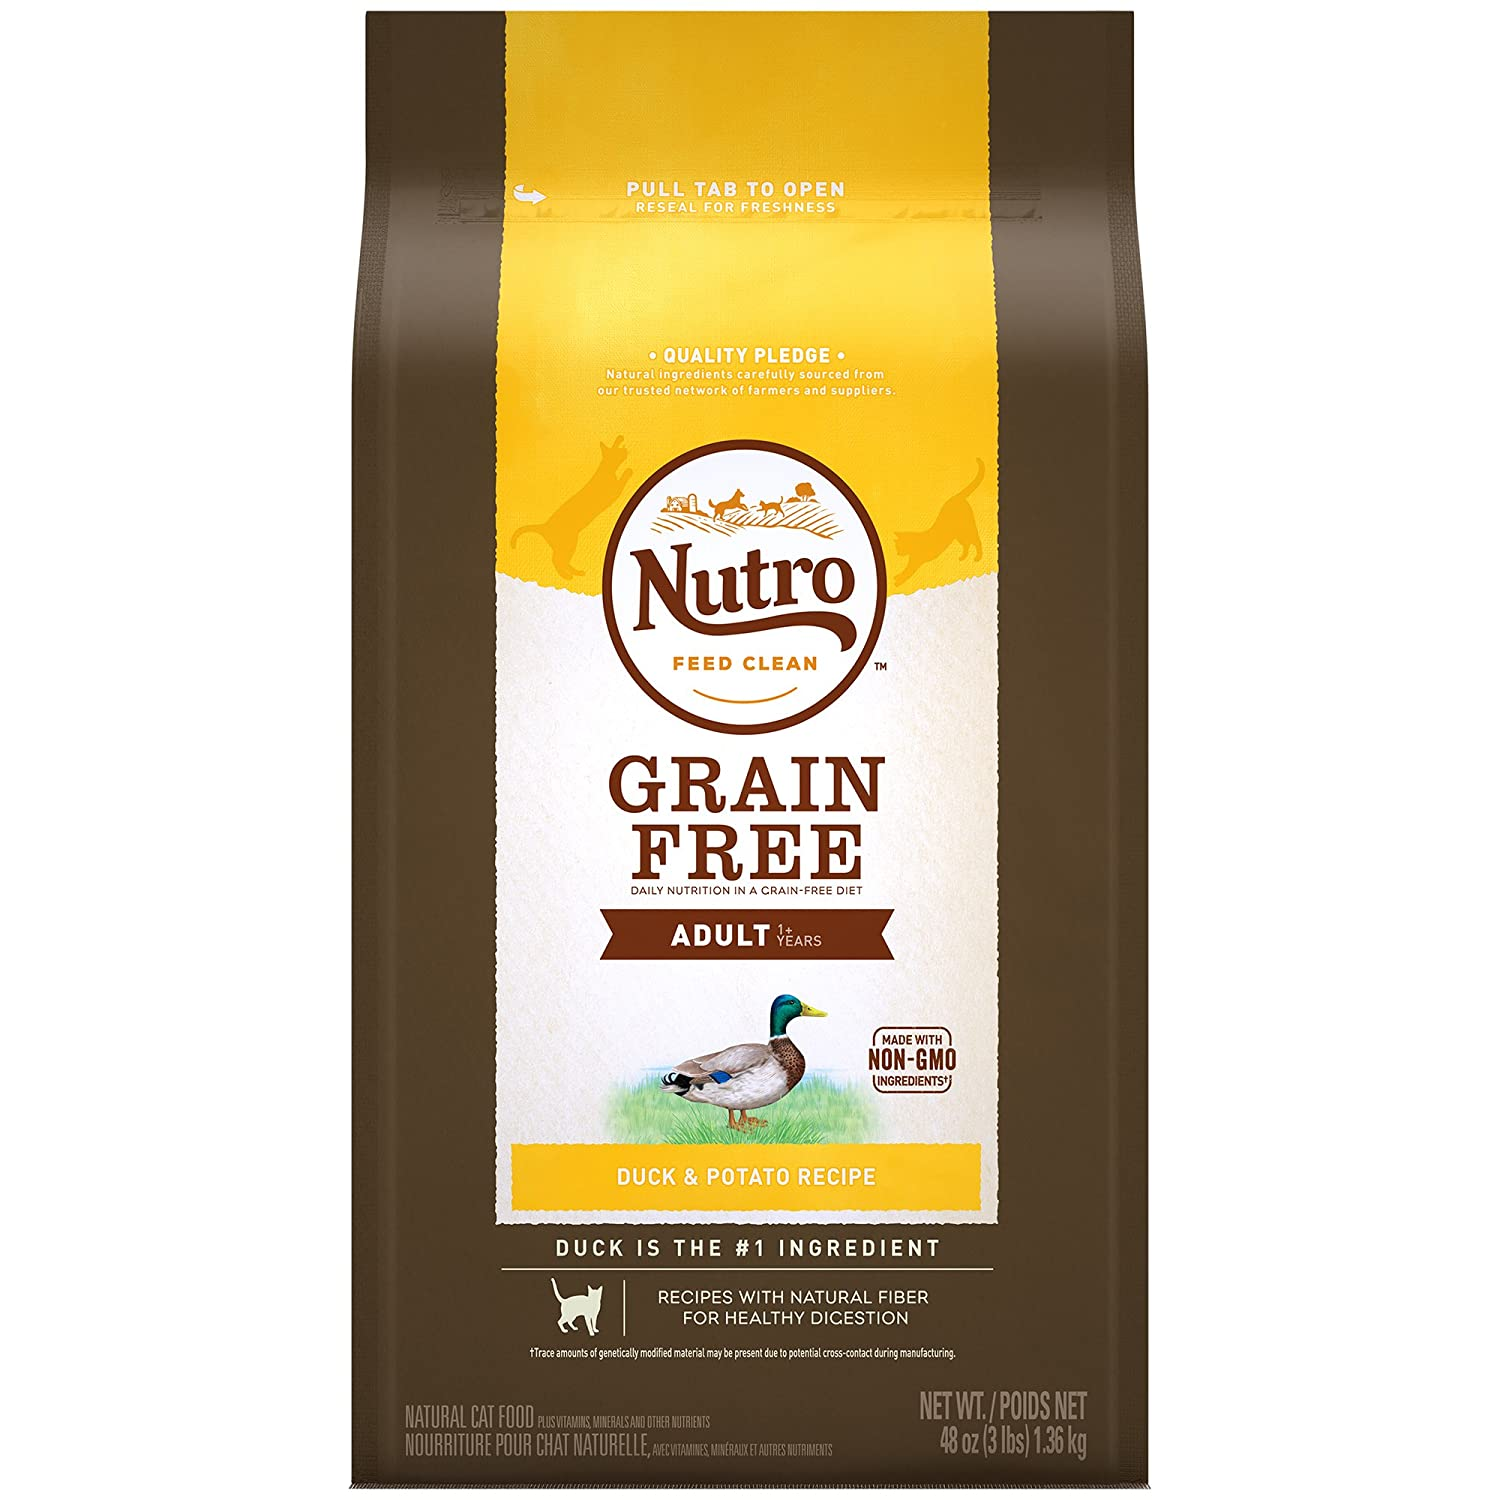 NUTRO Grain-Free Duck & Potato Recipe Adult Dry Cat Food 3 Pounds